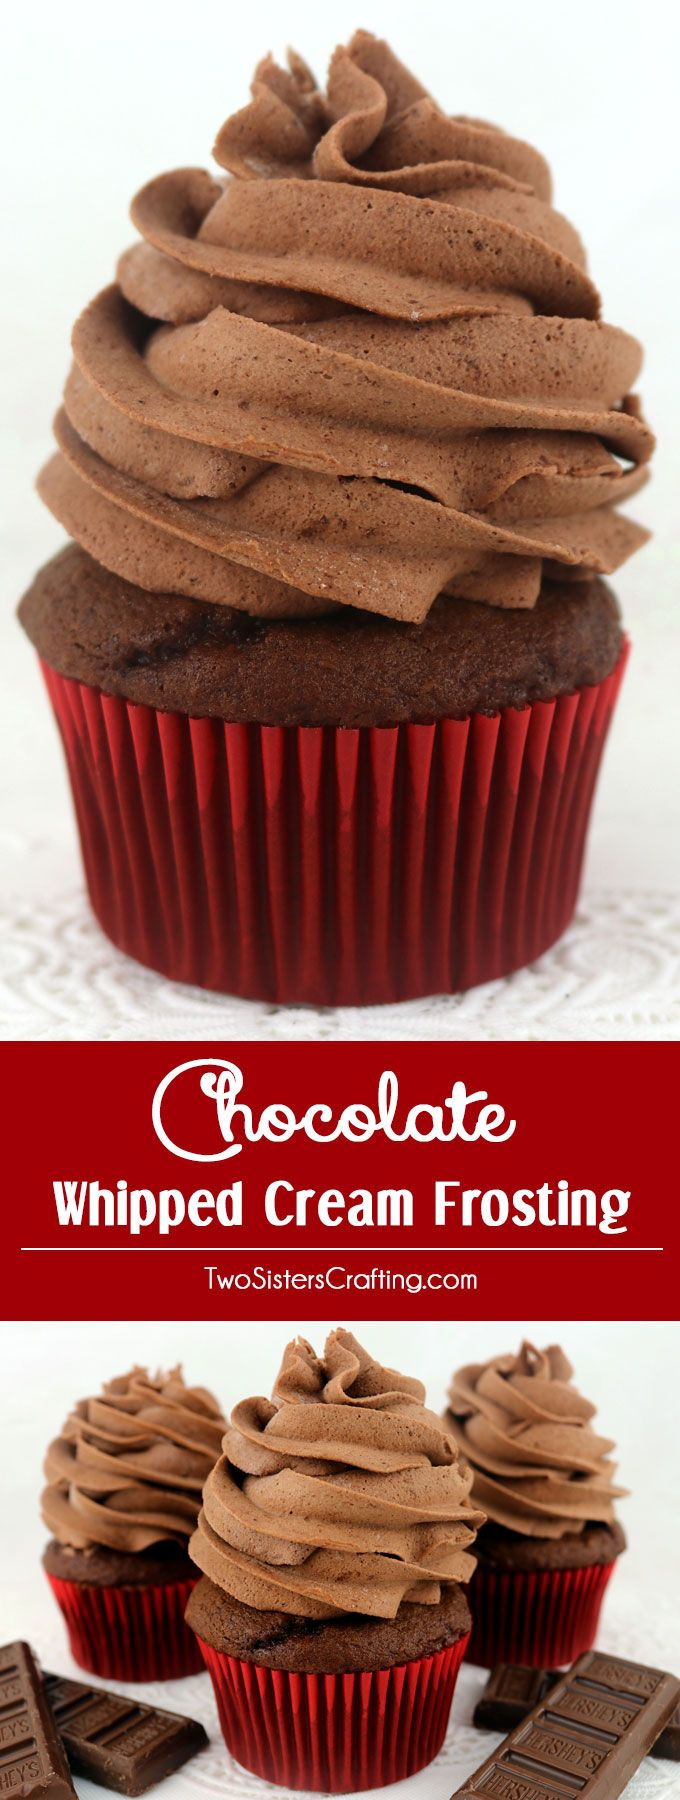 Chocolate Whipped Cream Frosting - light and airy and delicious and it tastes just like Chocolate Whipped Cream. But unlike regular Whipping Cream, this frosting holds its shape, lasts for days and can be used to frost both cake and cupcakes. And it is so easy to make. This yummy Chocolate frosting will become an instant favorite.  Pin this homemade icing for later and follow us for more great Frosting Recipes! #creamfrosting